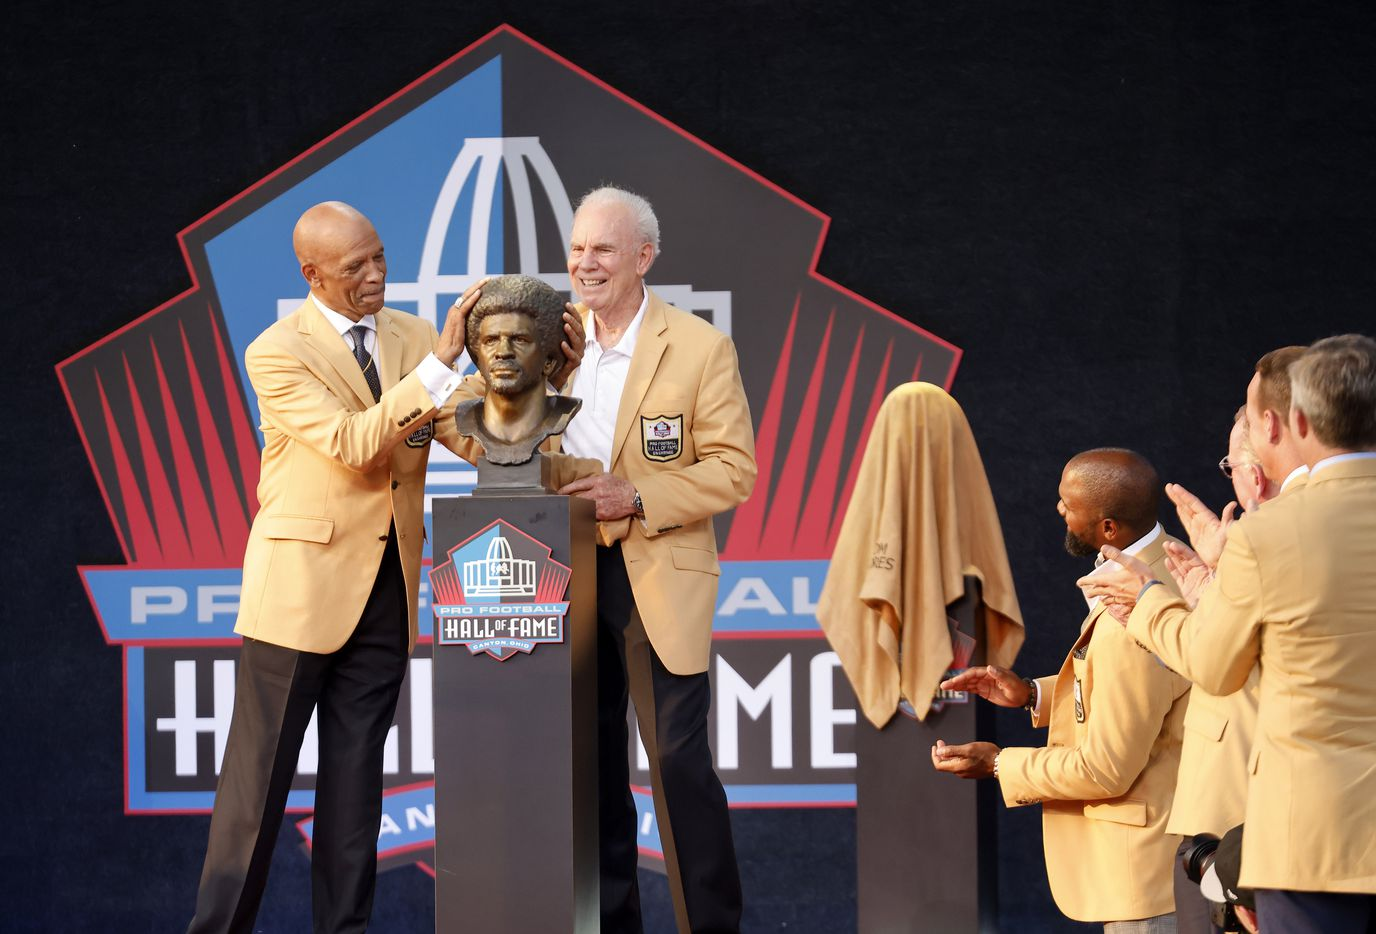 Pro Football Hall of Fame inductee Drew Pearson of the Dallas Cowboys (left) rubs his bronze afro after unveiling the bust with presenter and former Cowboy Roger Staubach during the Class of 2021 enshrinement ceremony at Tom Benson Hall of Fame Stadium in Canton, Ohio, Sunday, August 8, 2021. (Tom Fox/The Dallas Morning News)